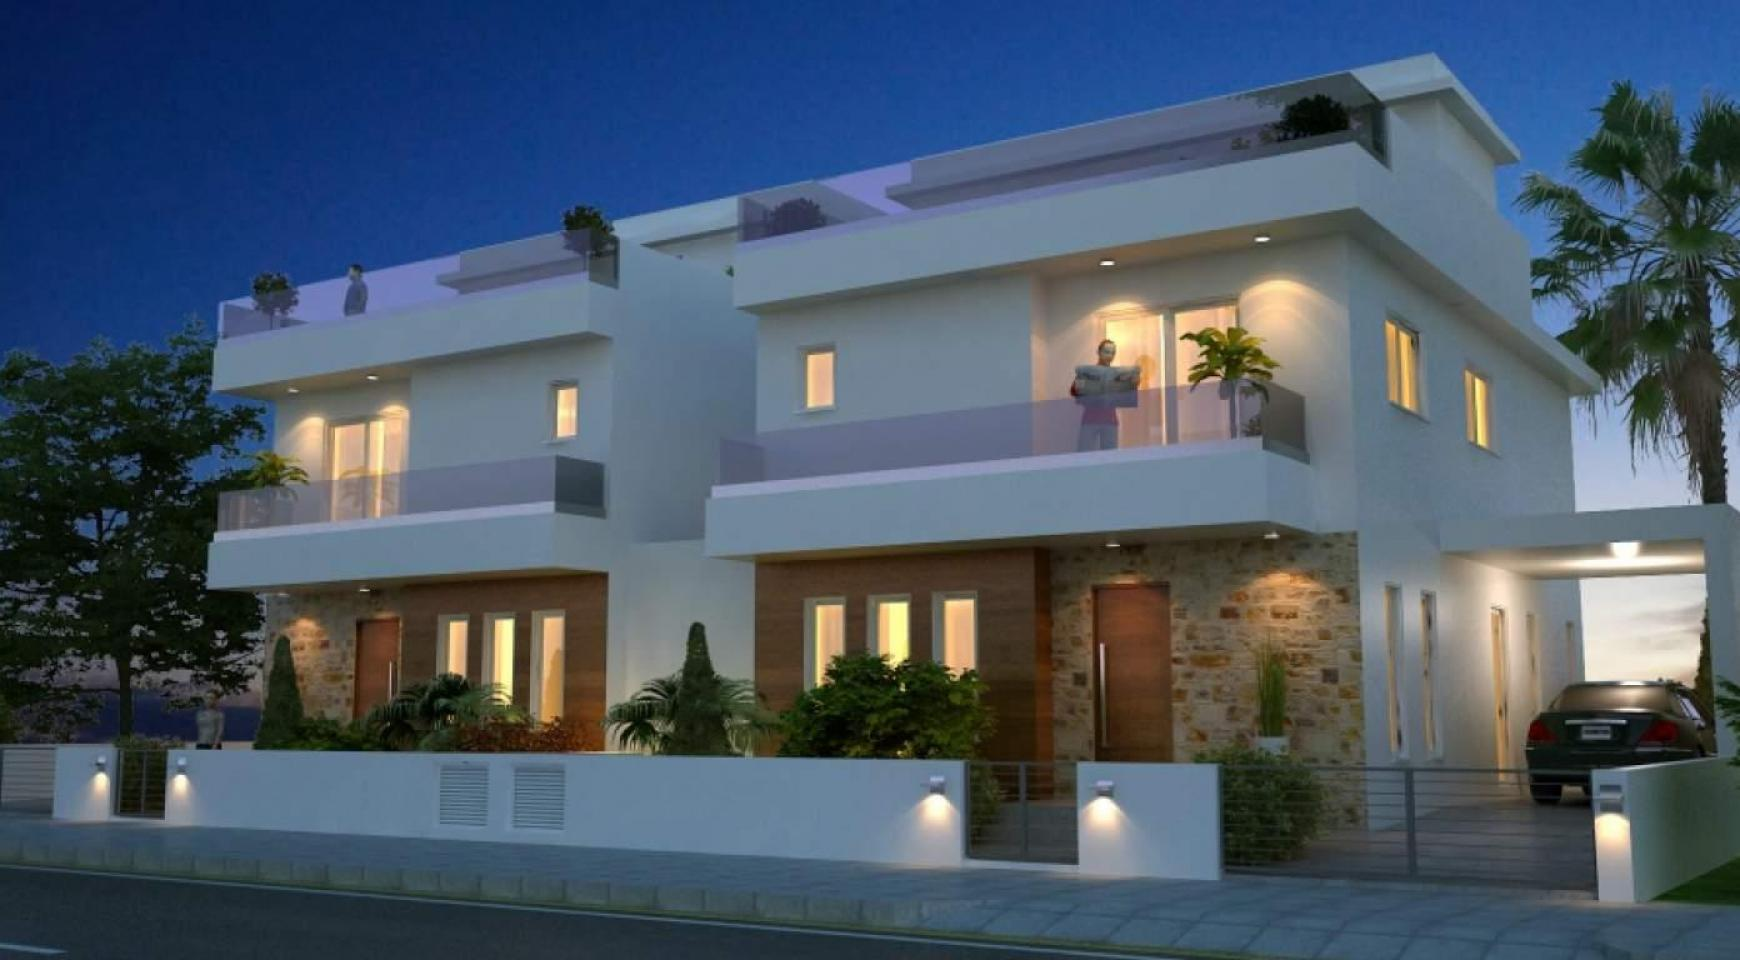 4 Bedroom House in Leivadia Area - 3